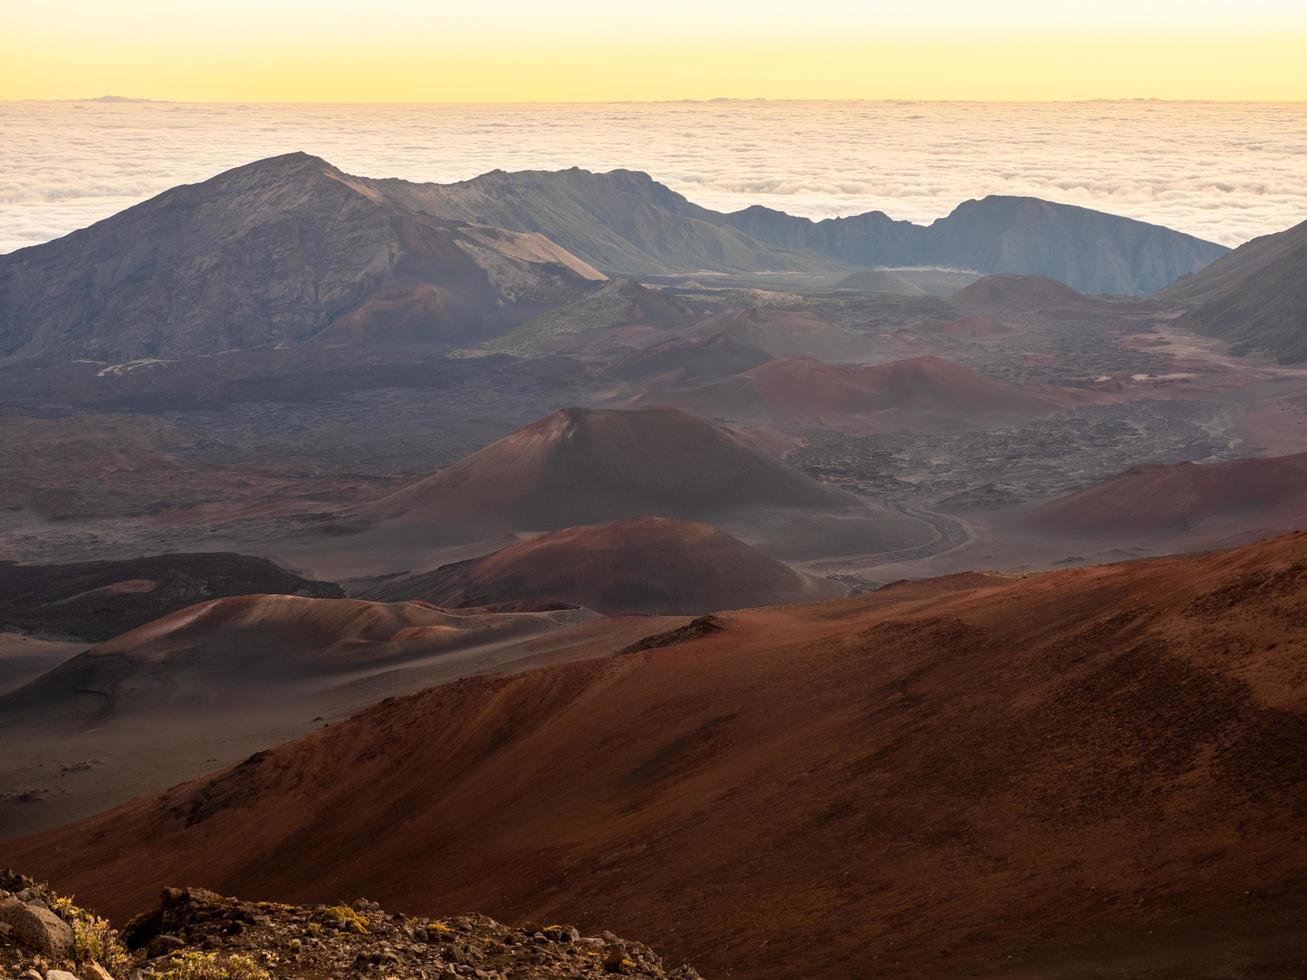 Brown and gray mountains at sunset photo